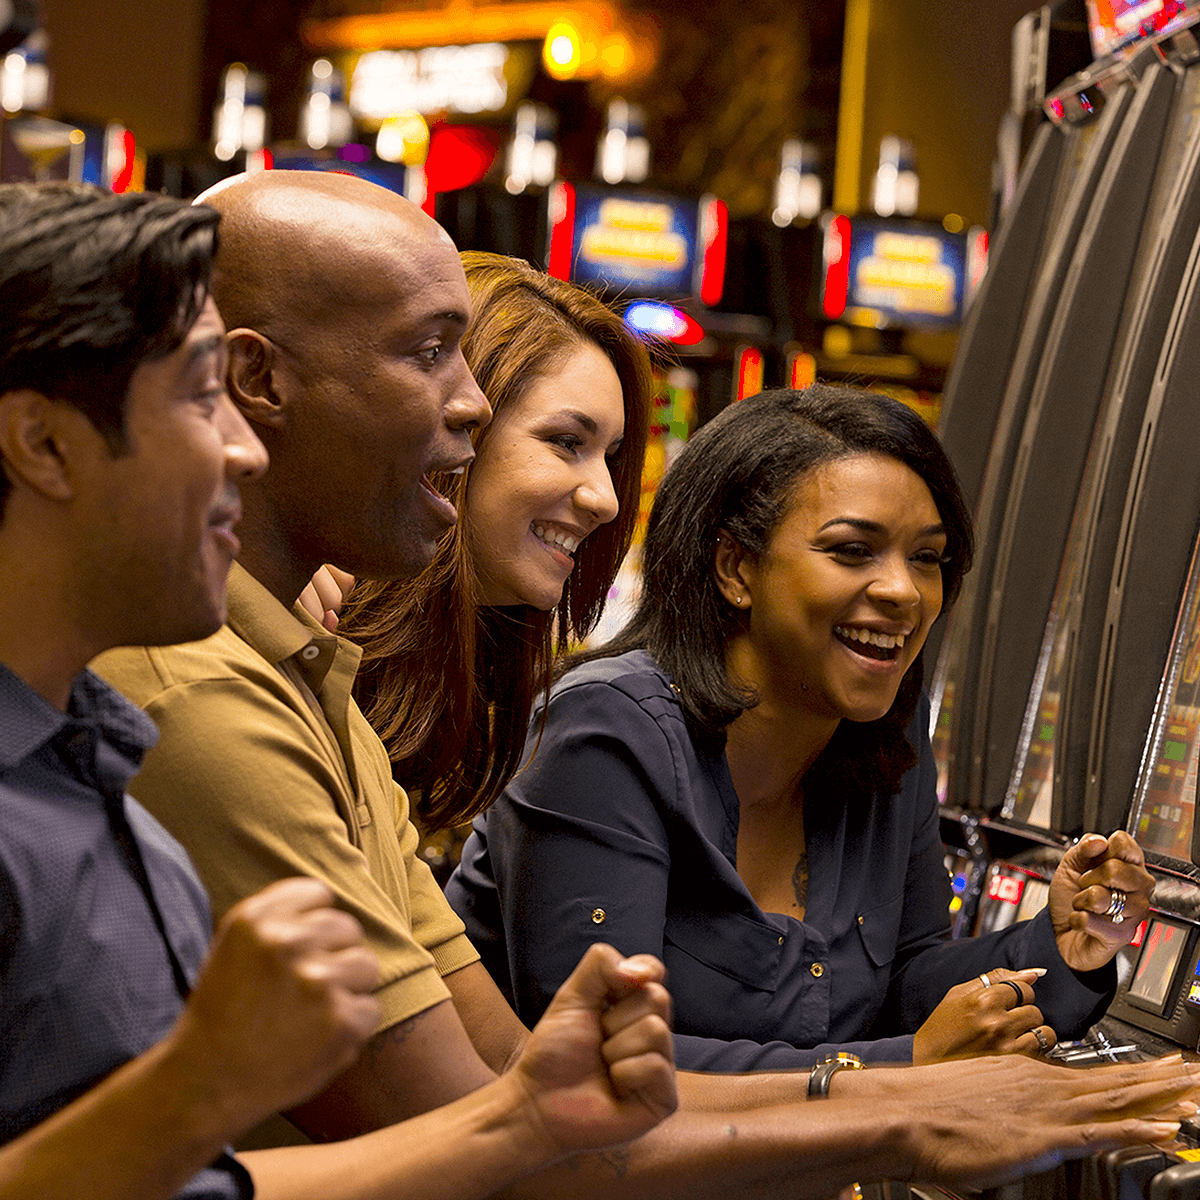 People playing slot machines